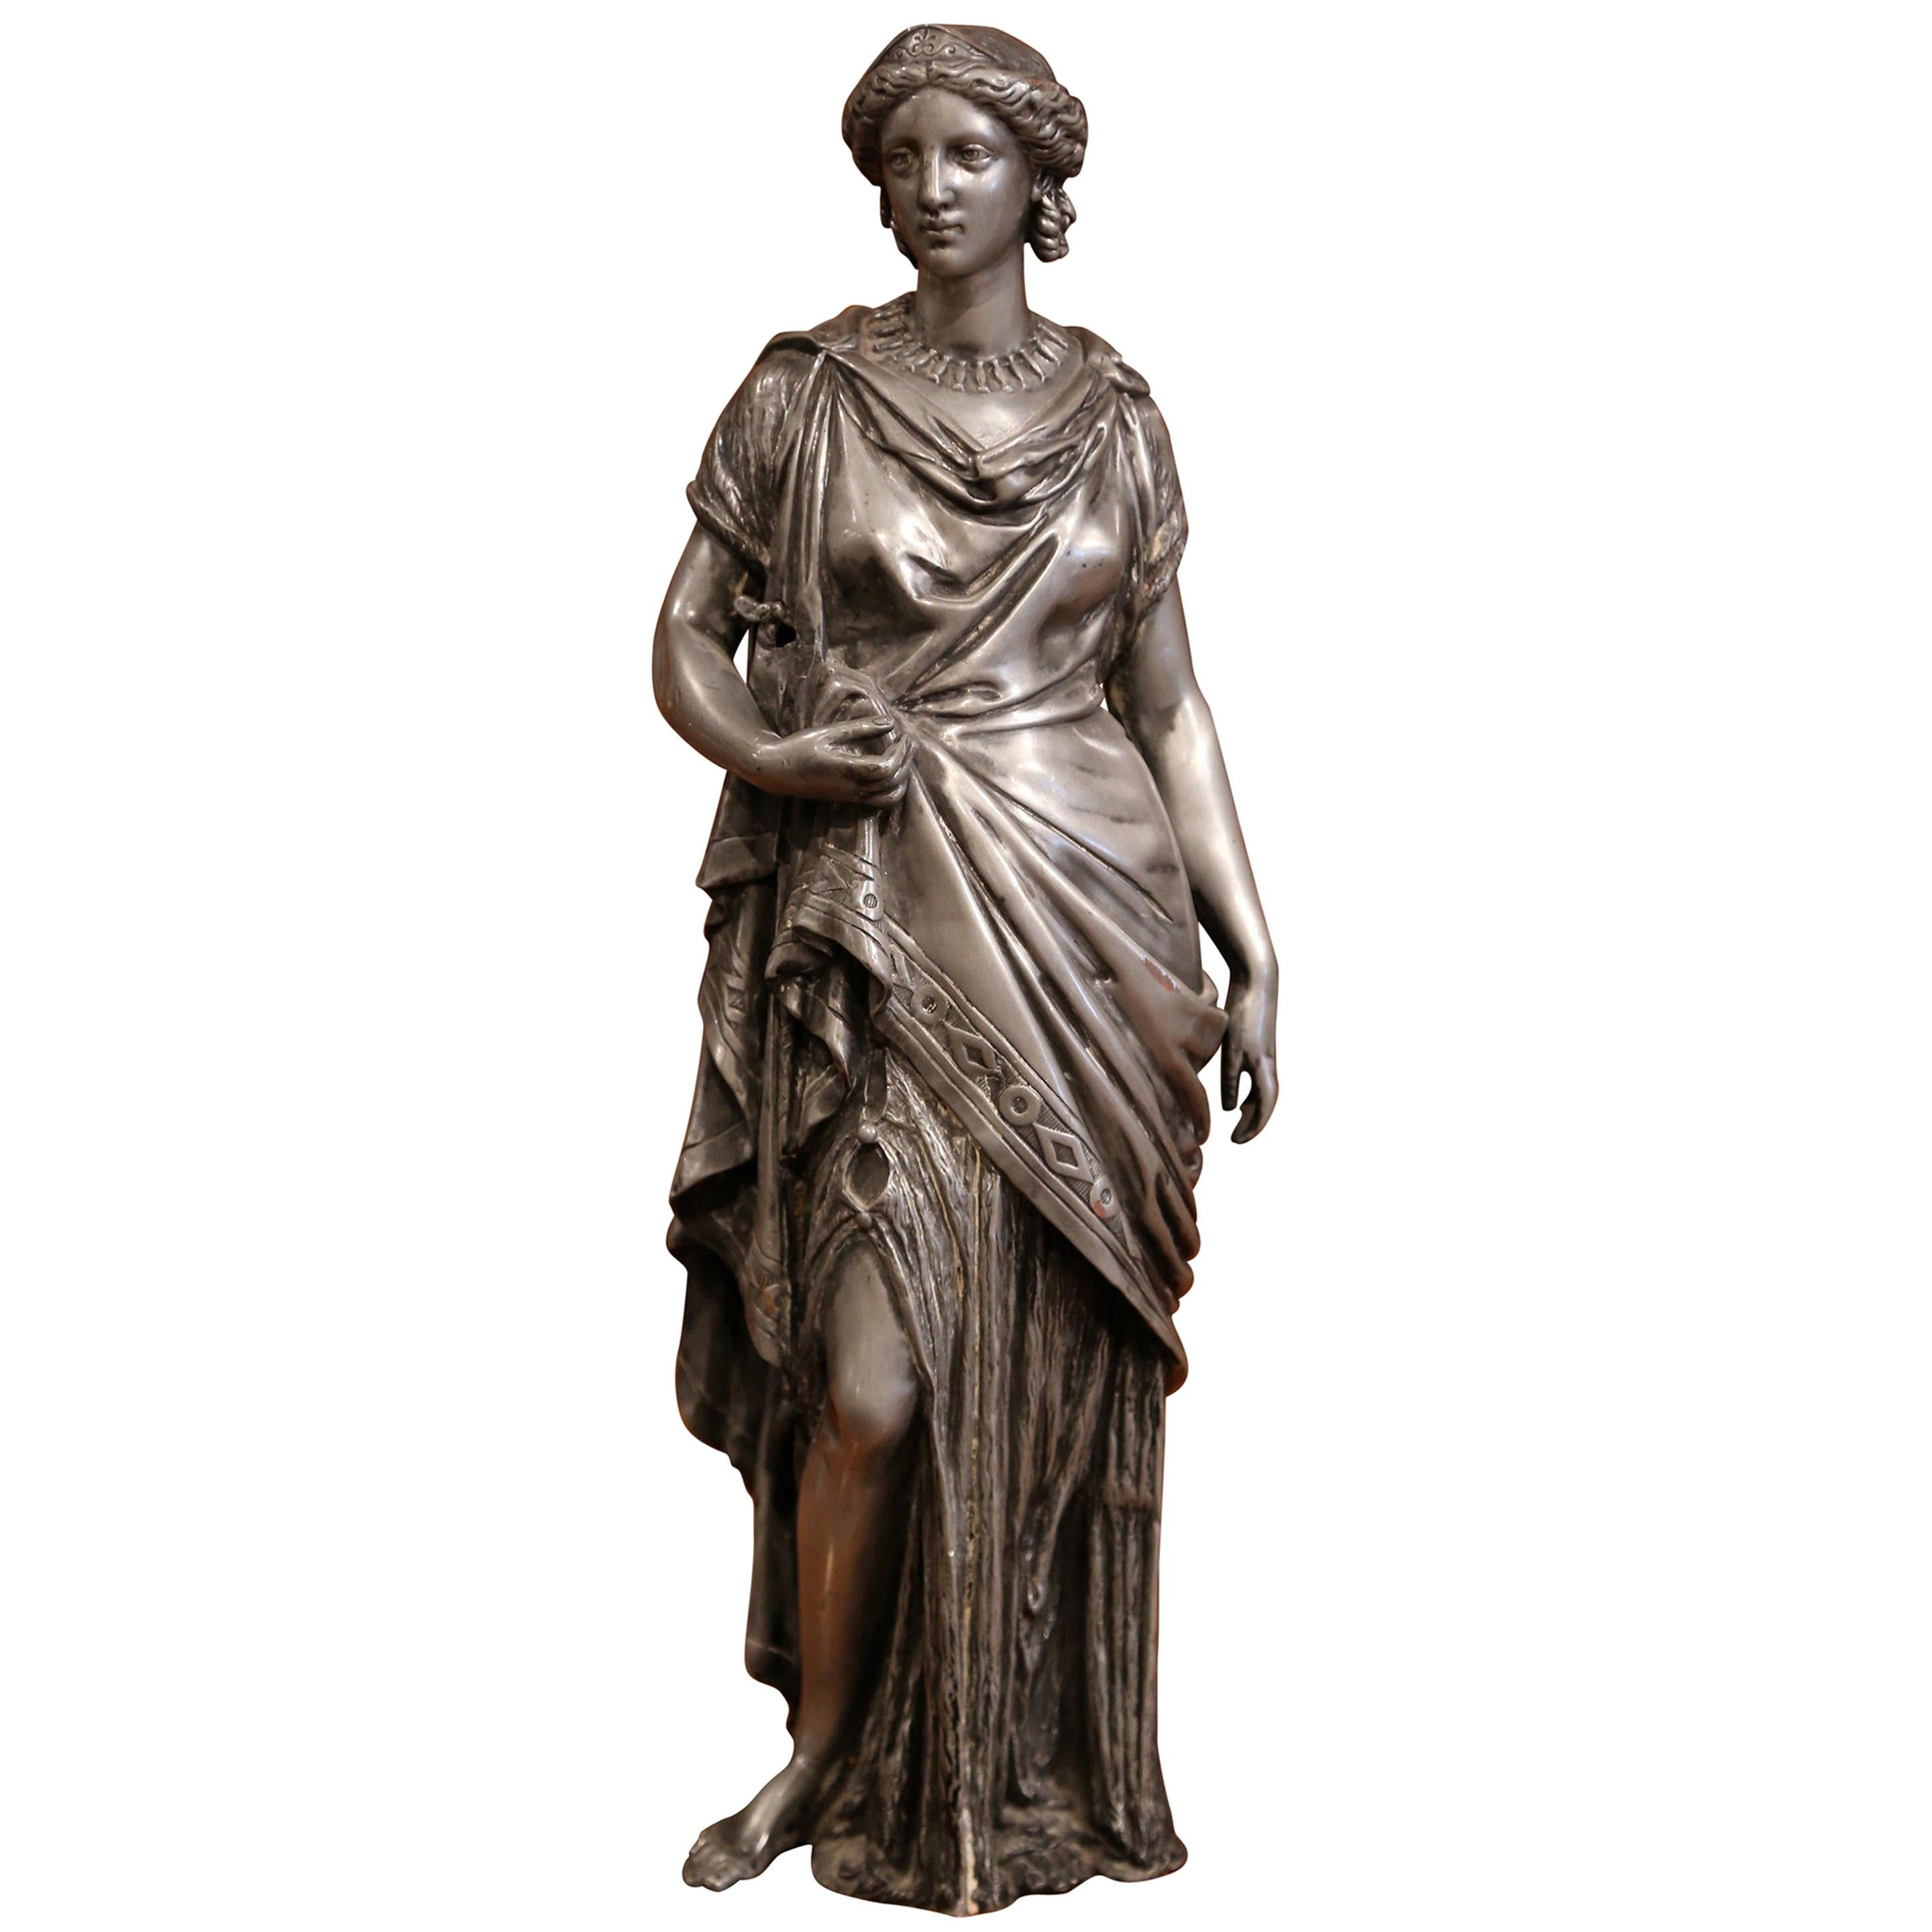 19th Century French Patinated Pewter Roman Woman Statue